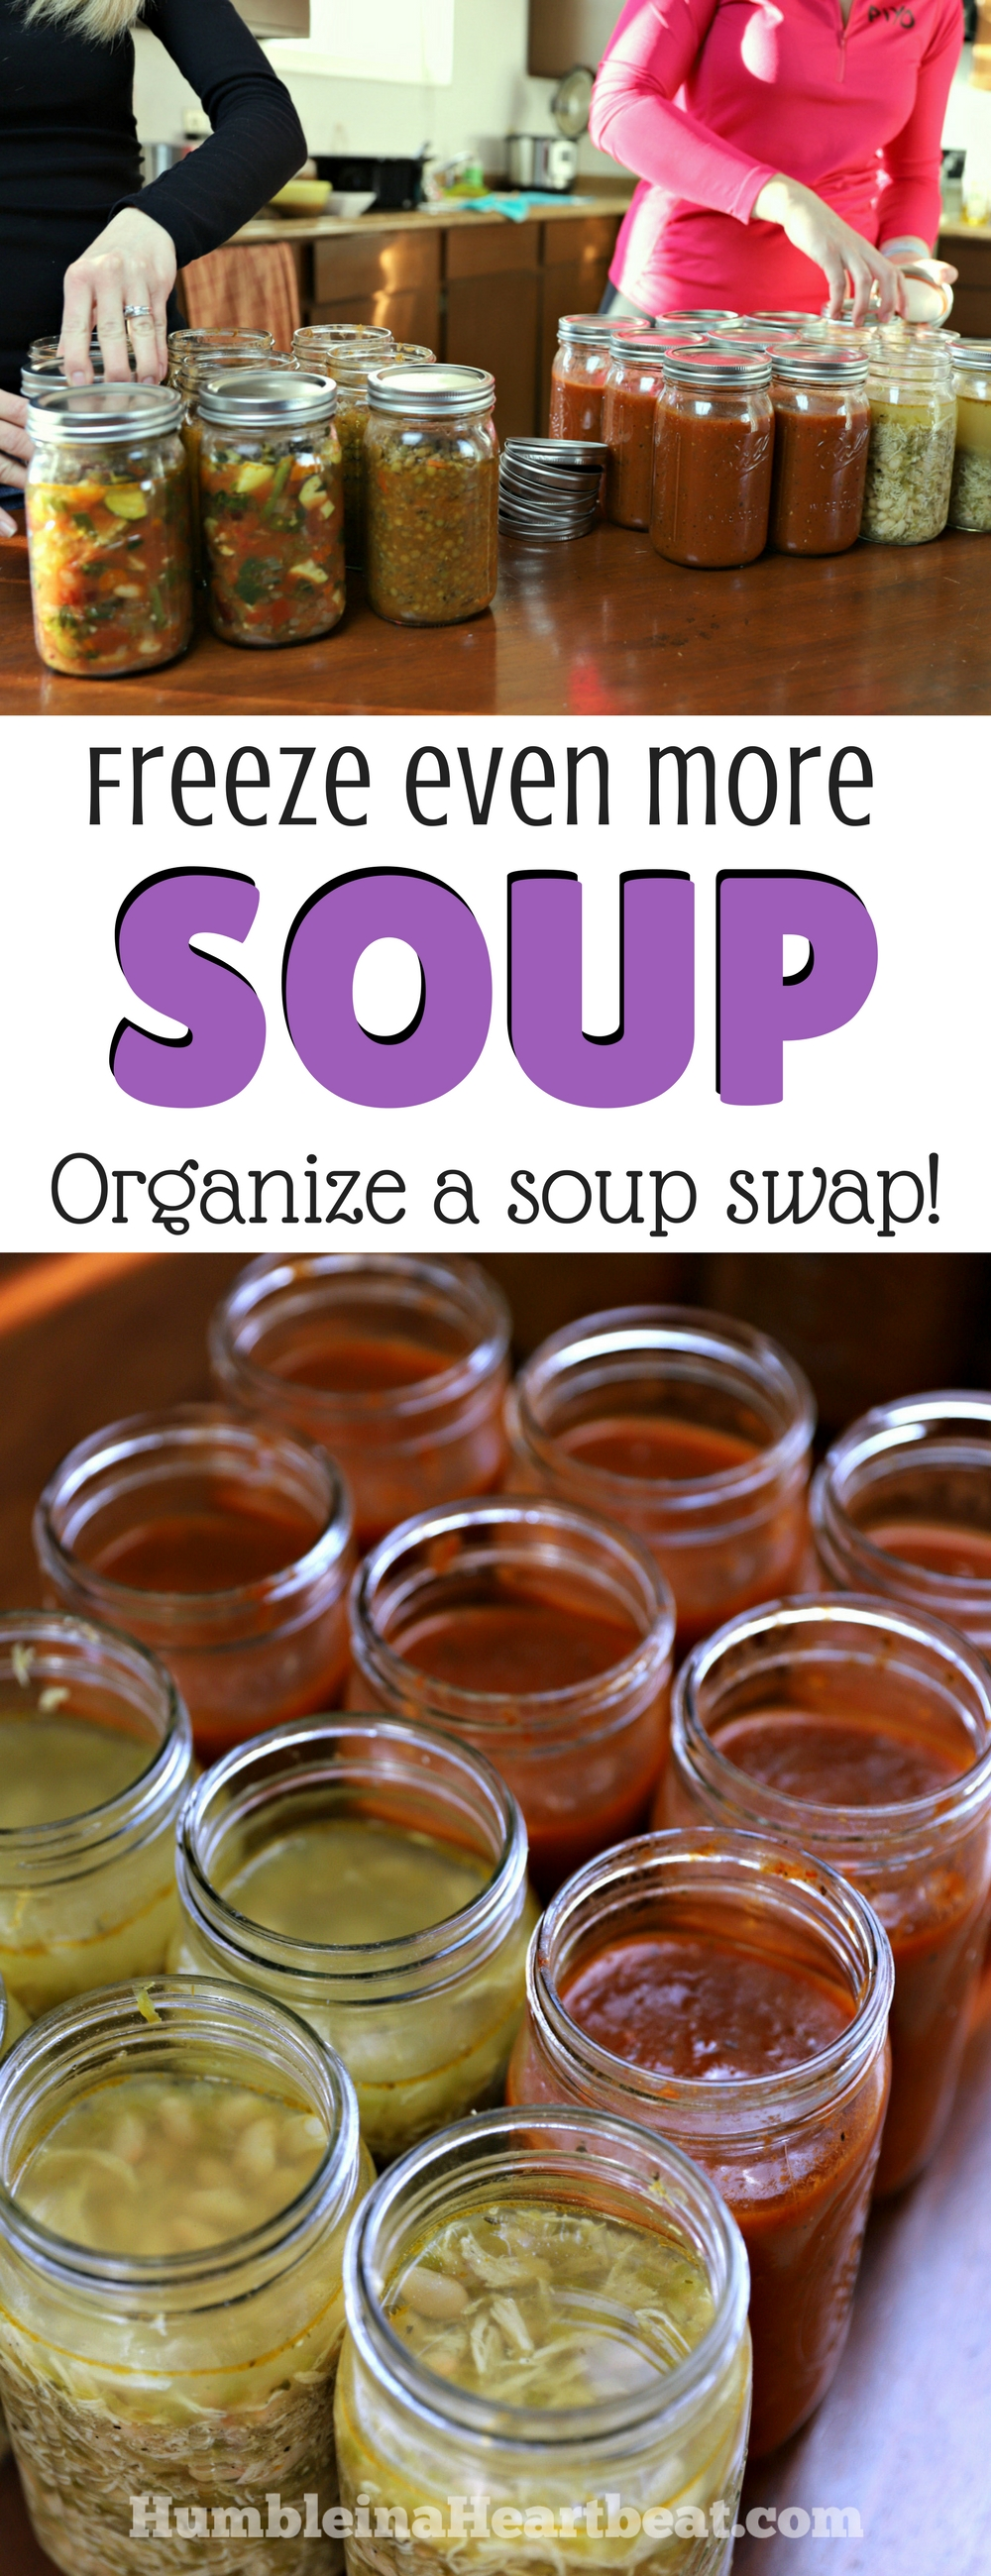 You need to get with your girlfriends and do a soup swap! It's so easy to organize, and you'll be able to stock your freezer with soup while getting some adult time with your friends!